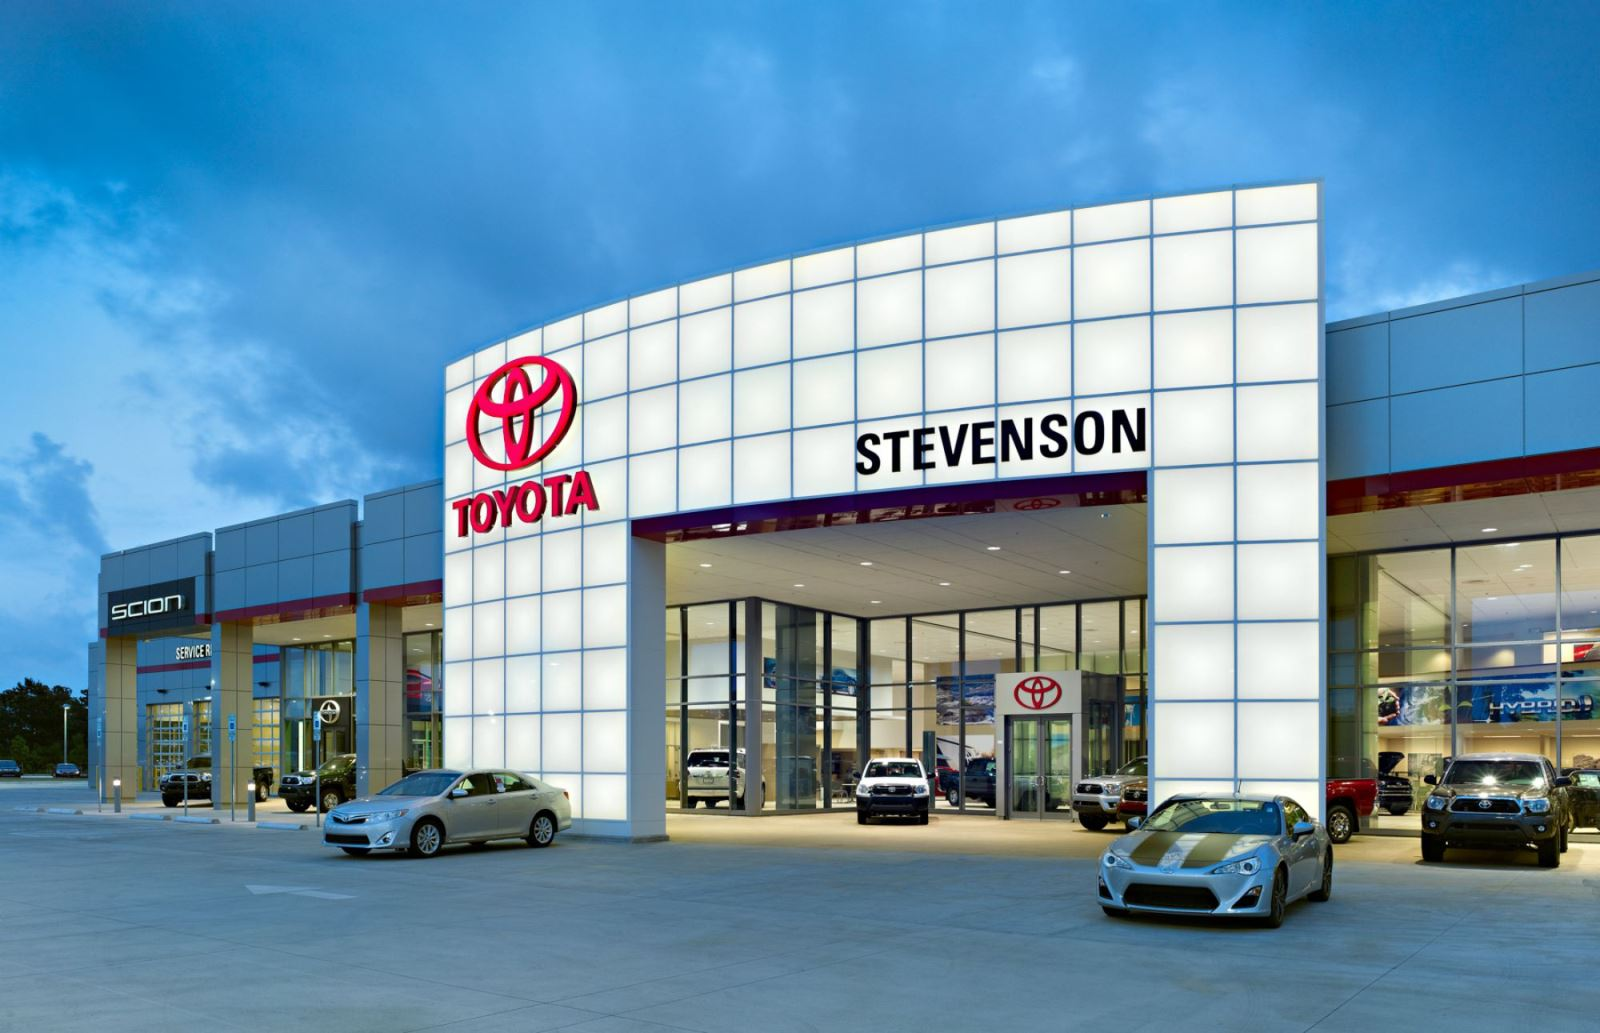 car jr s road news company image to move adds toyota williamson market business haley article